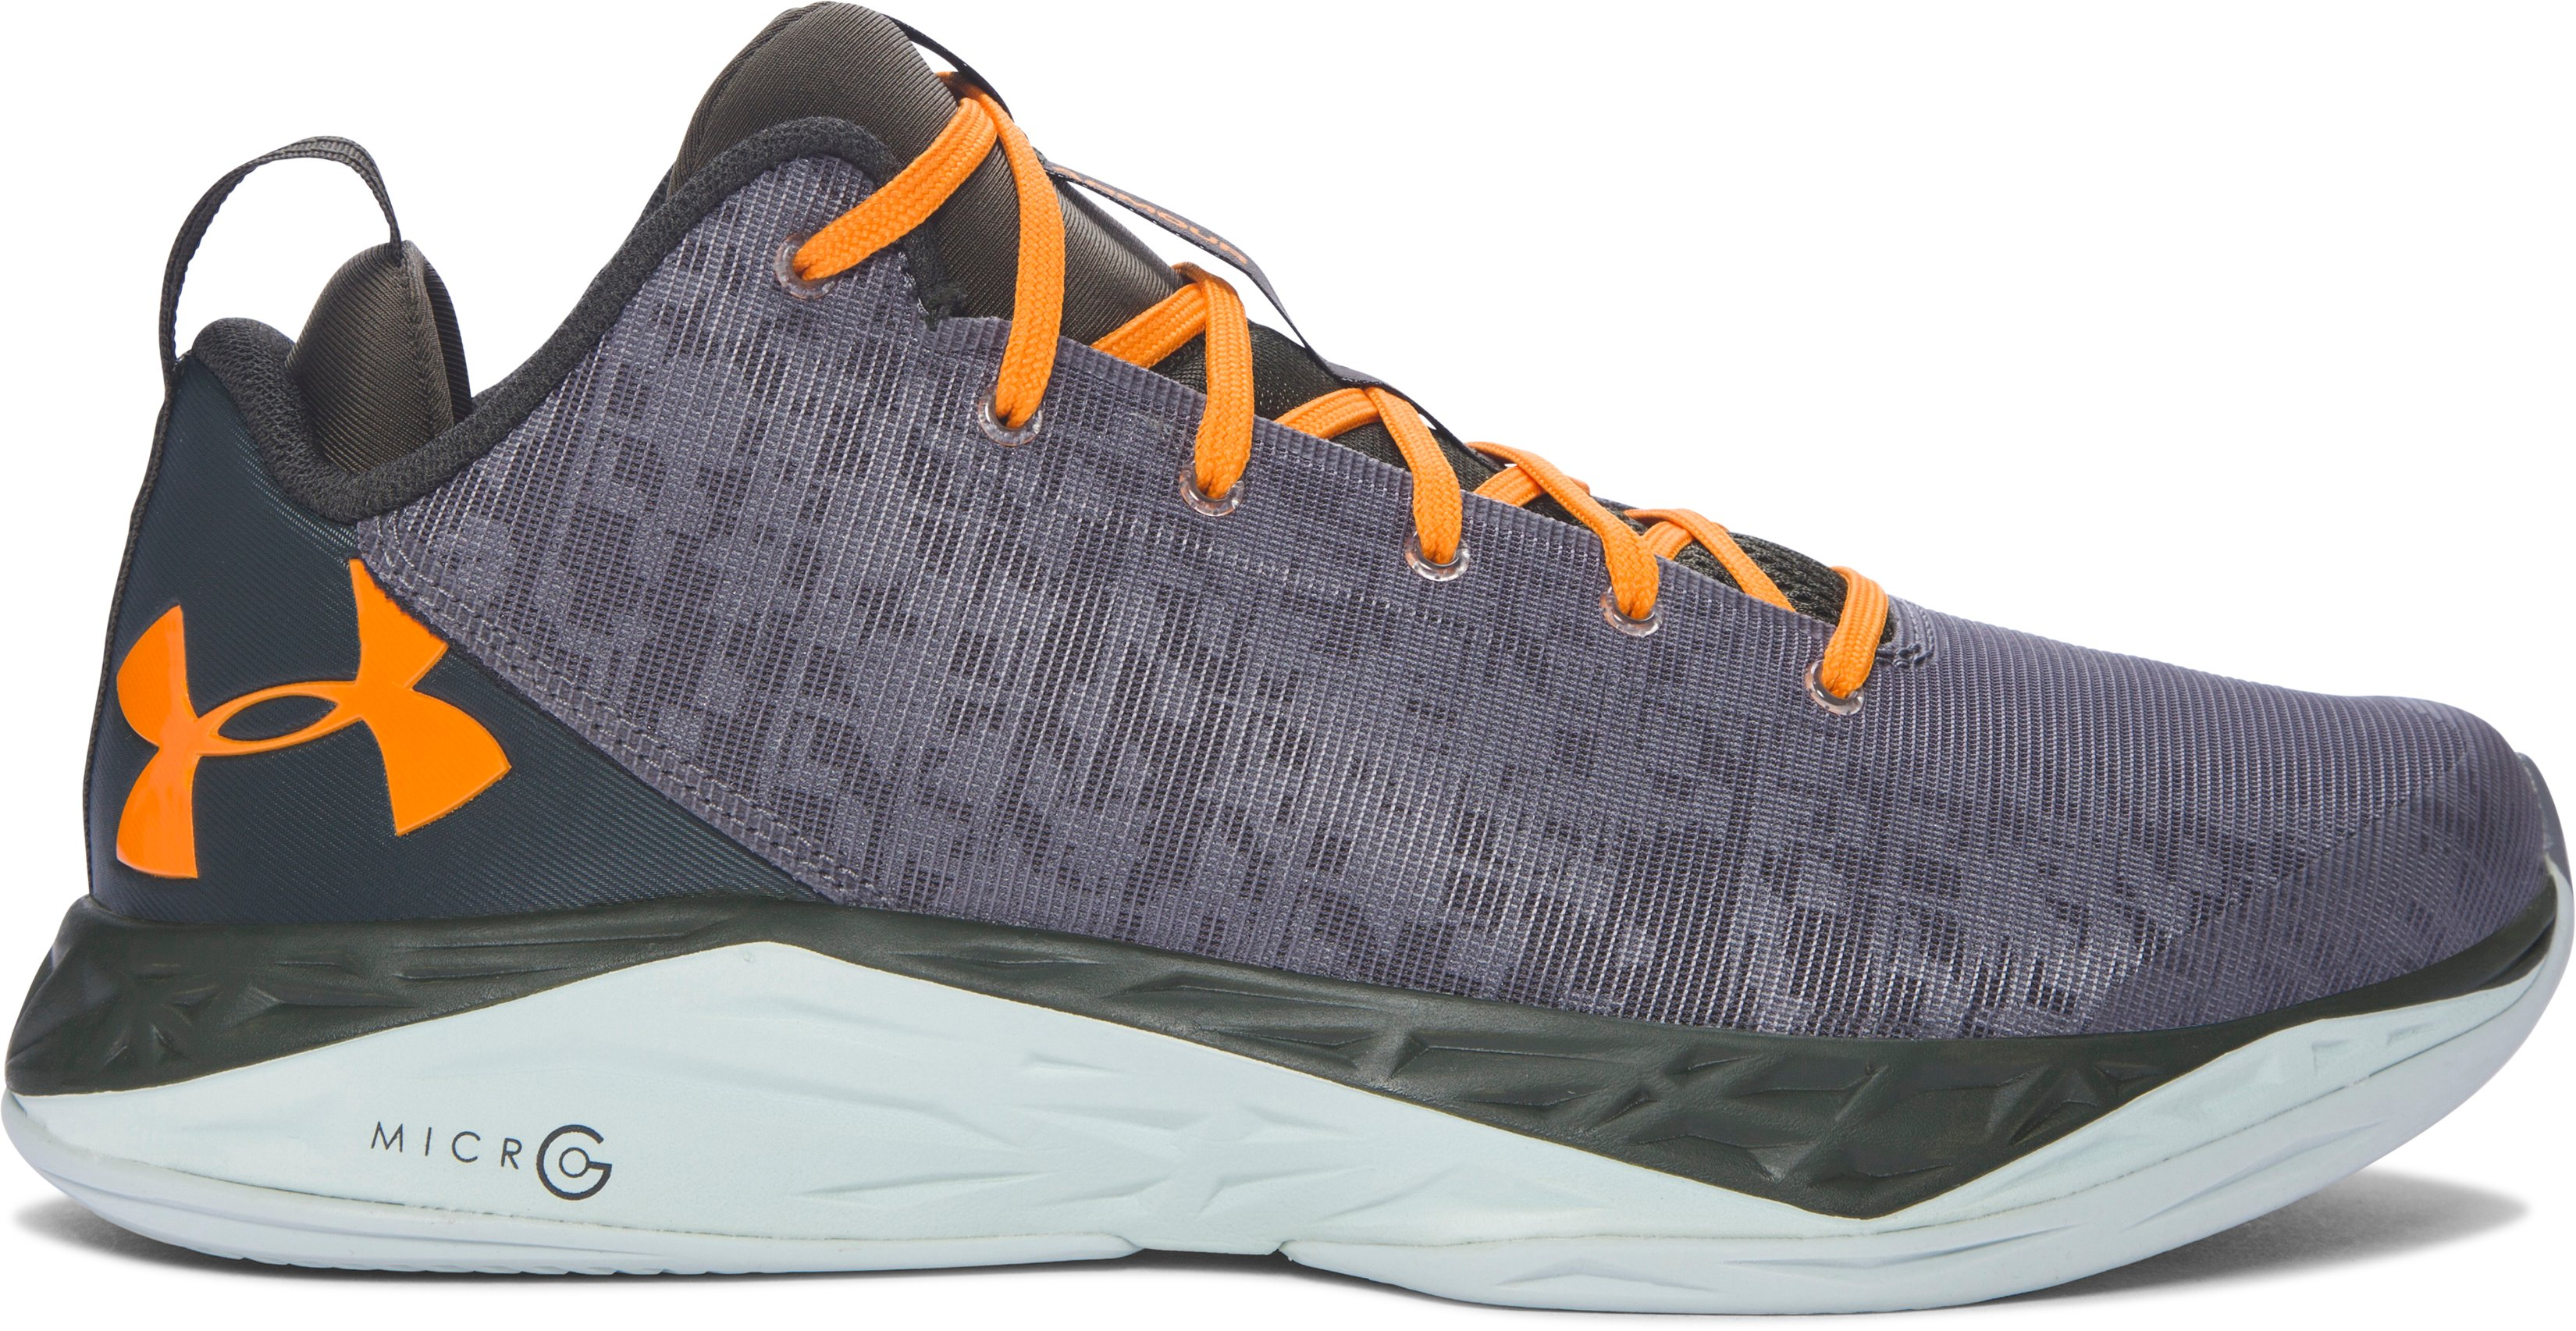 Men's UA Fireshot Low Basketball Shoes, Graphite